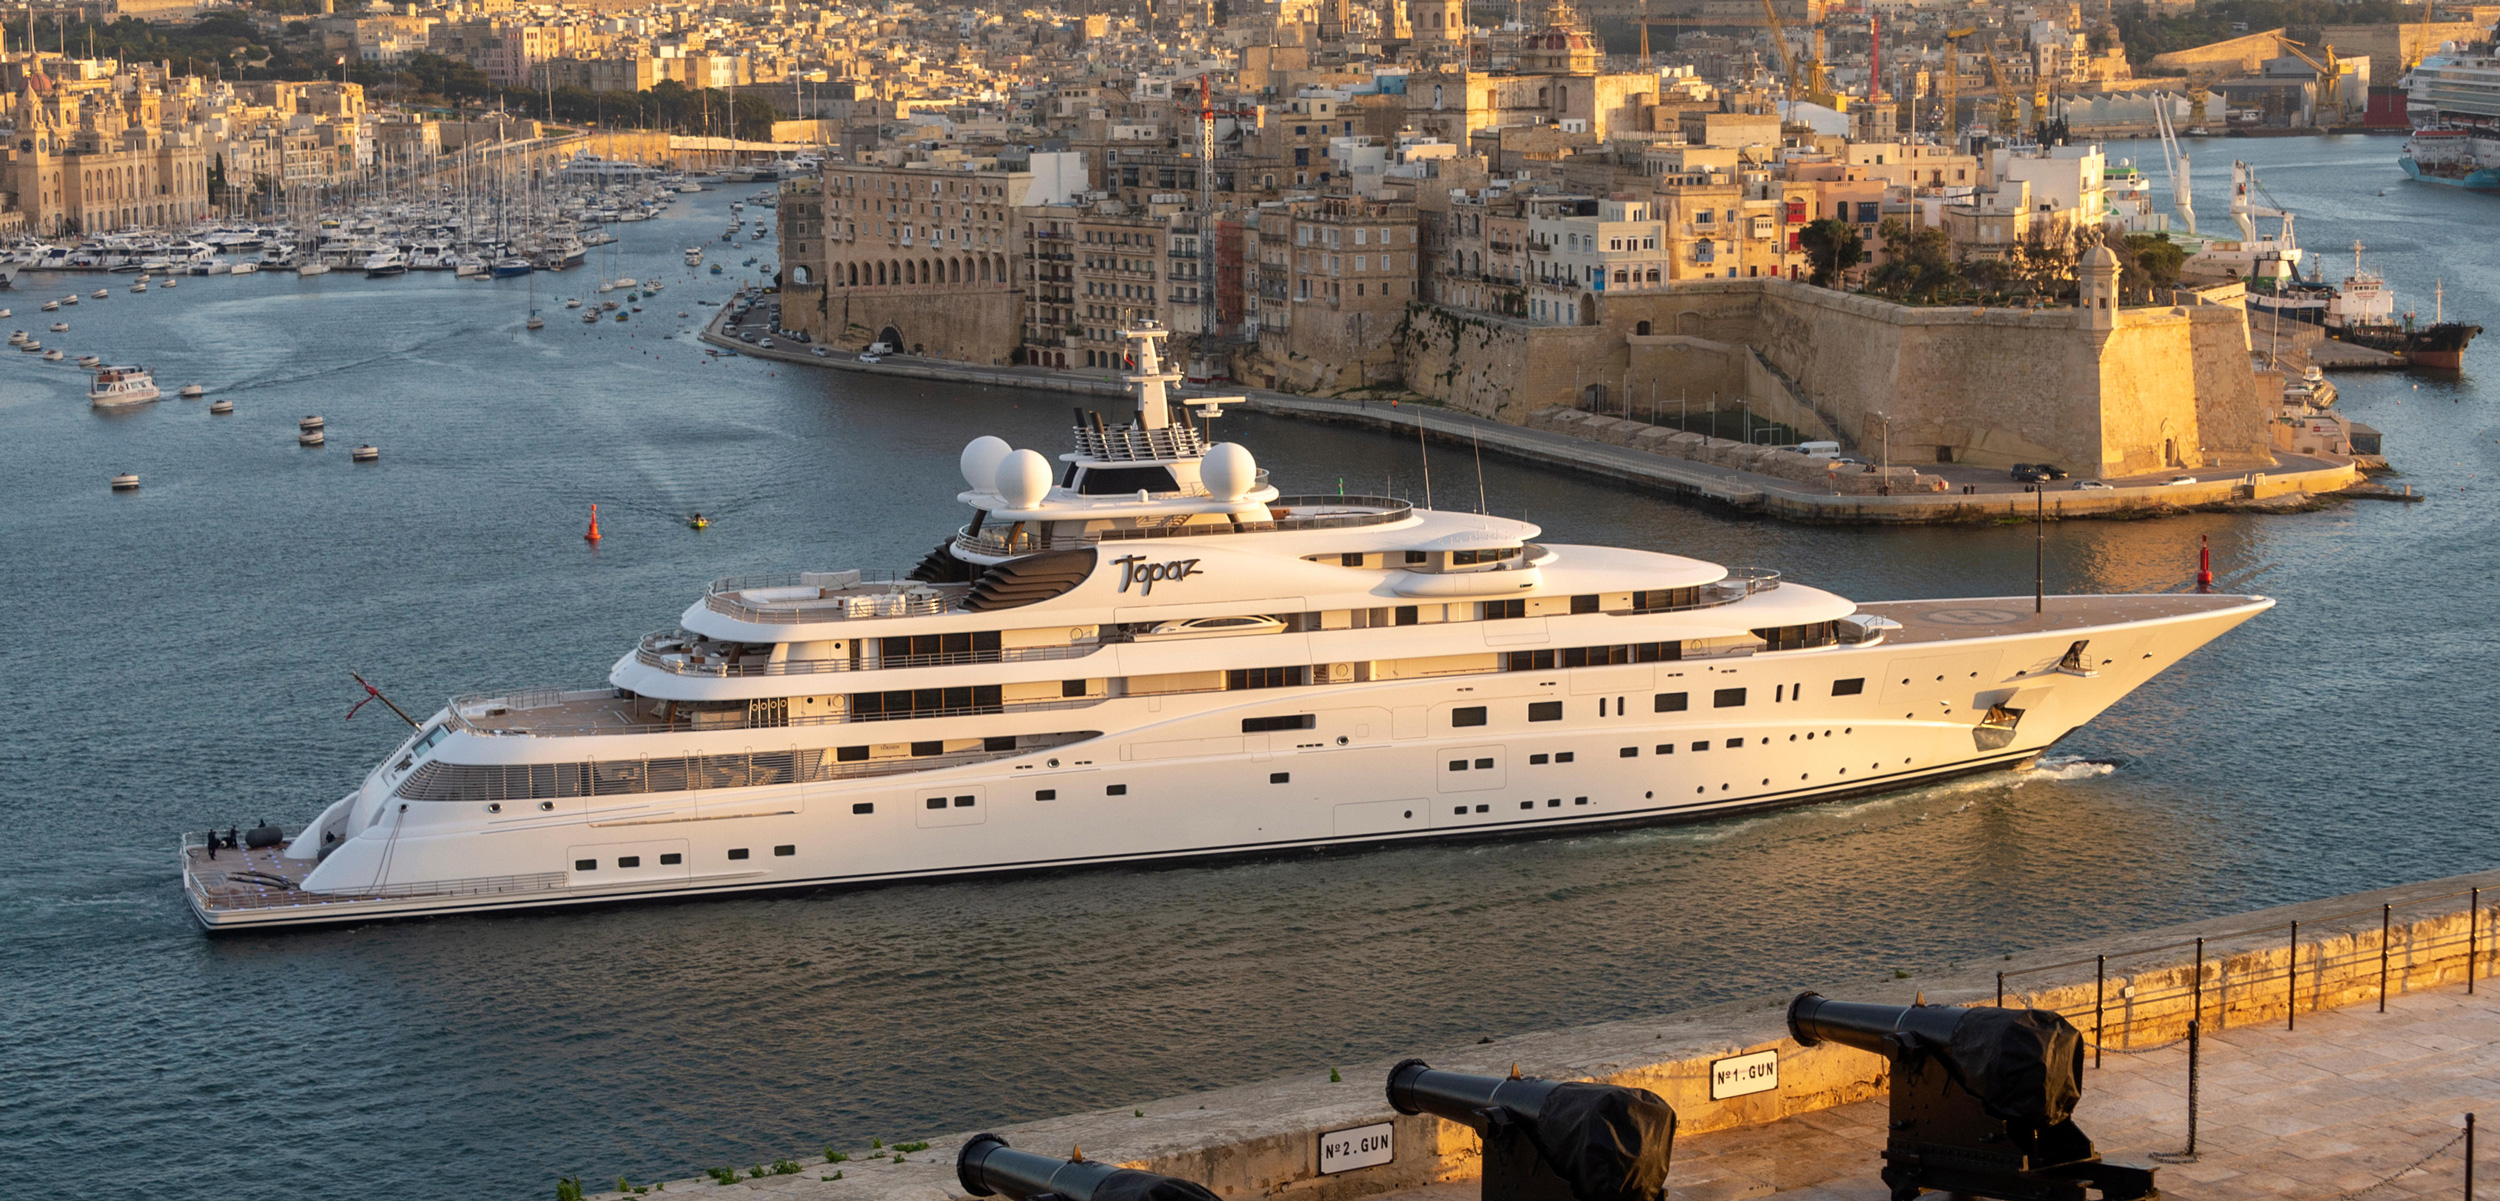 A privately owned megayacht enters the harbor at Valletta, Malta